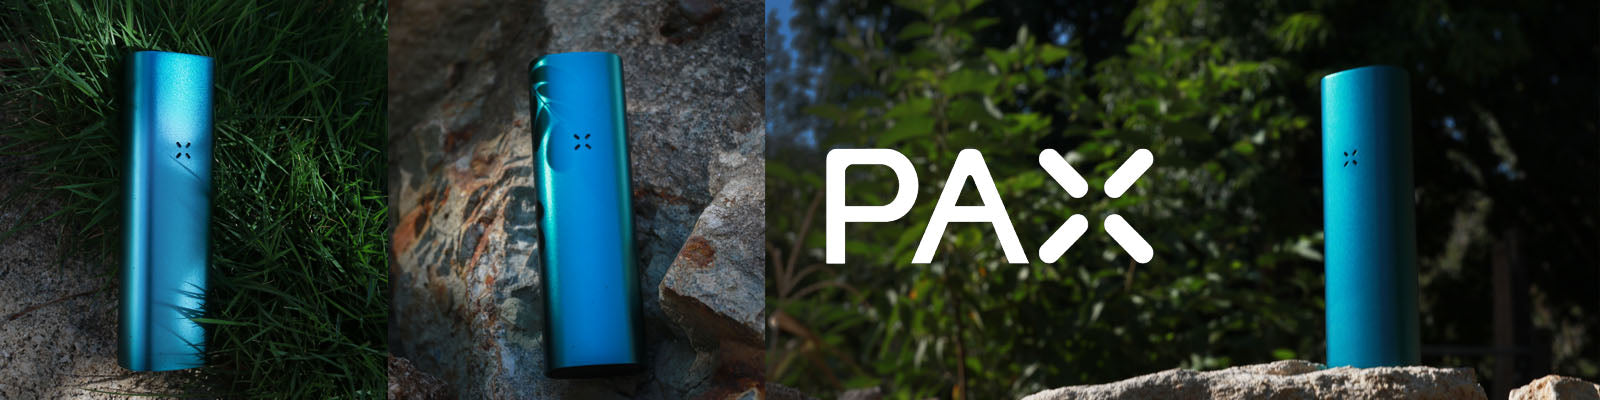 PAX Vaporizers Free Shipping Authorized Sellers